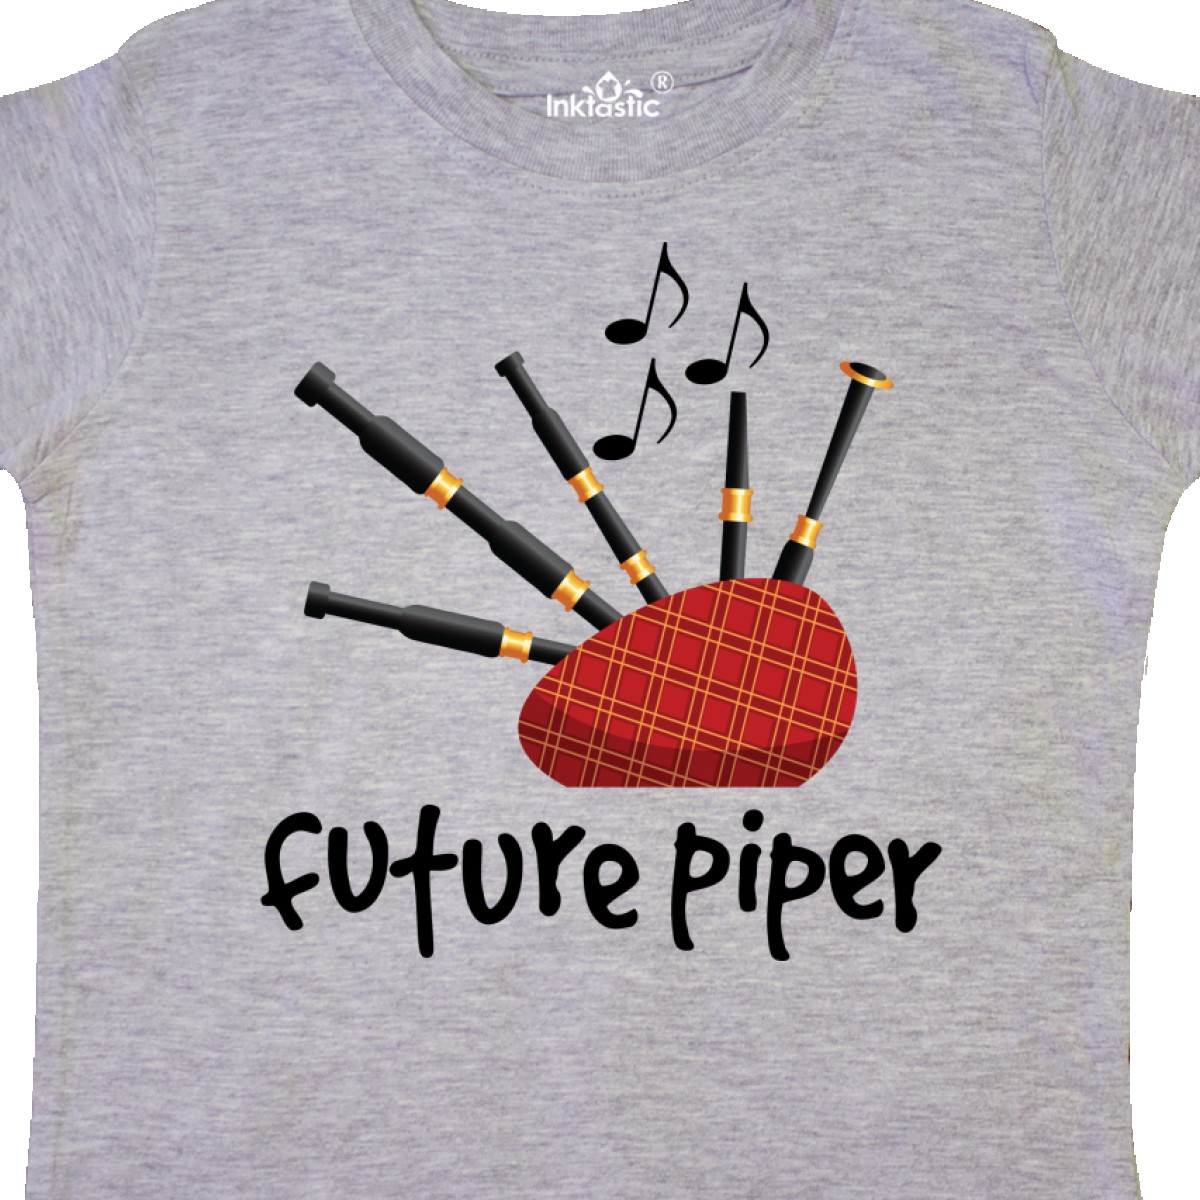 Inktastic-Bagpiper-Kids-Future-Piper-Toddler-T-Shirt-Bagpipes-Instruments-Gift thumbnail 4